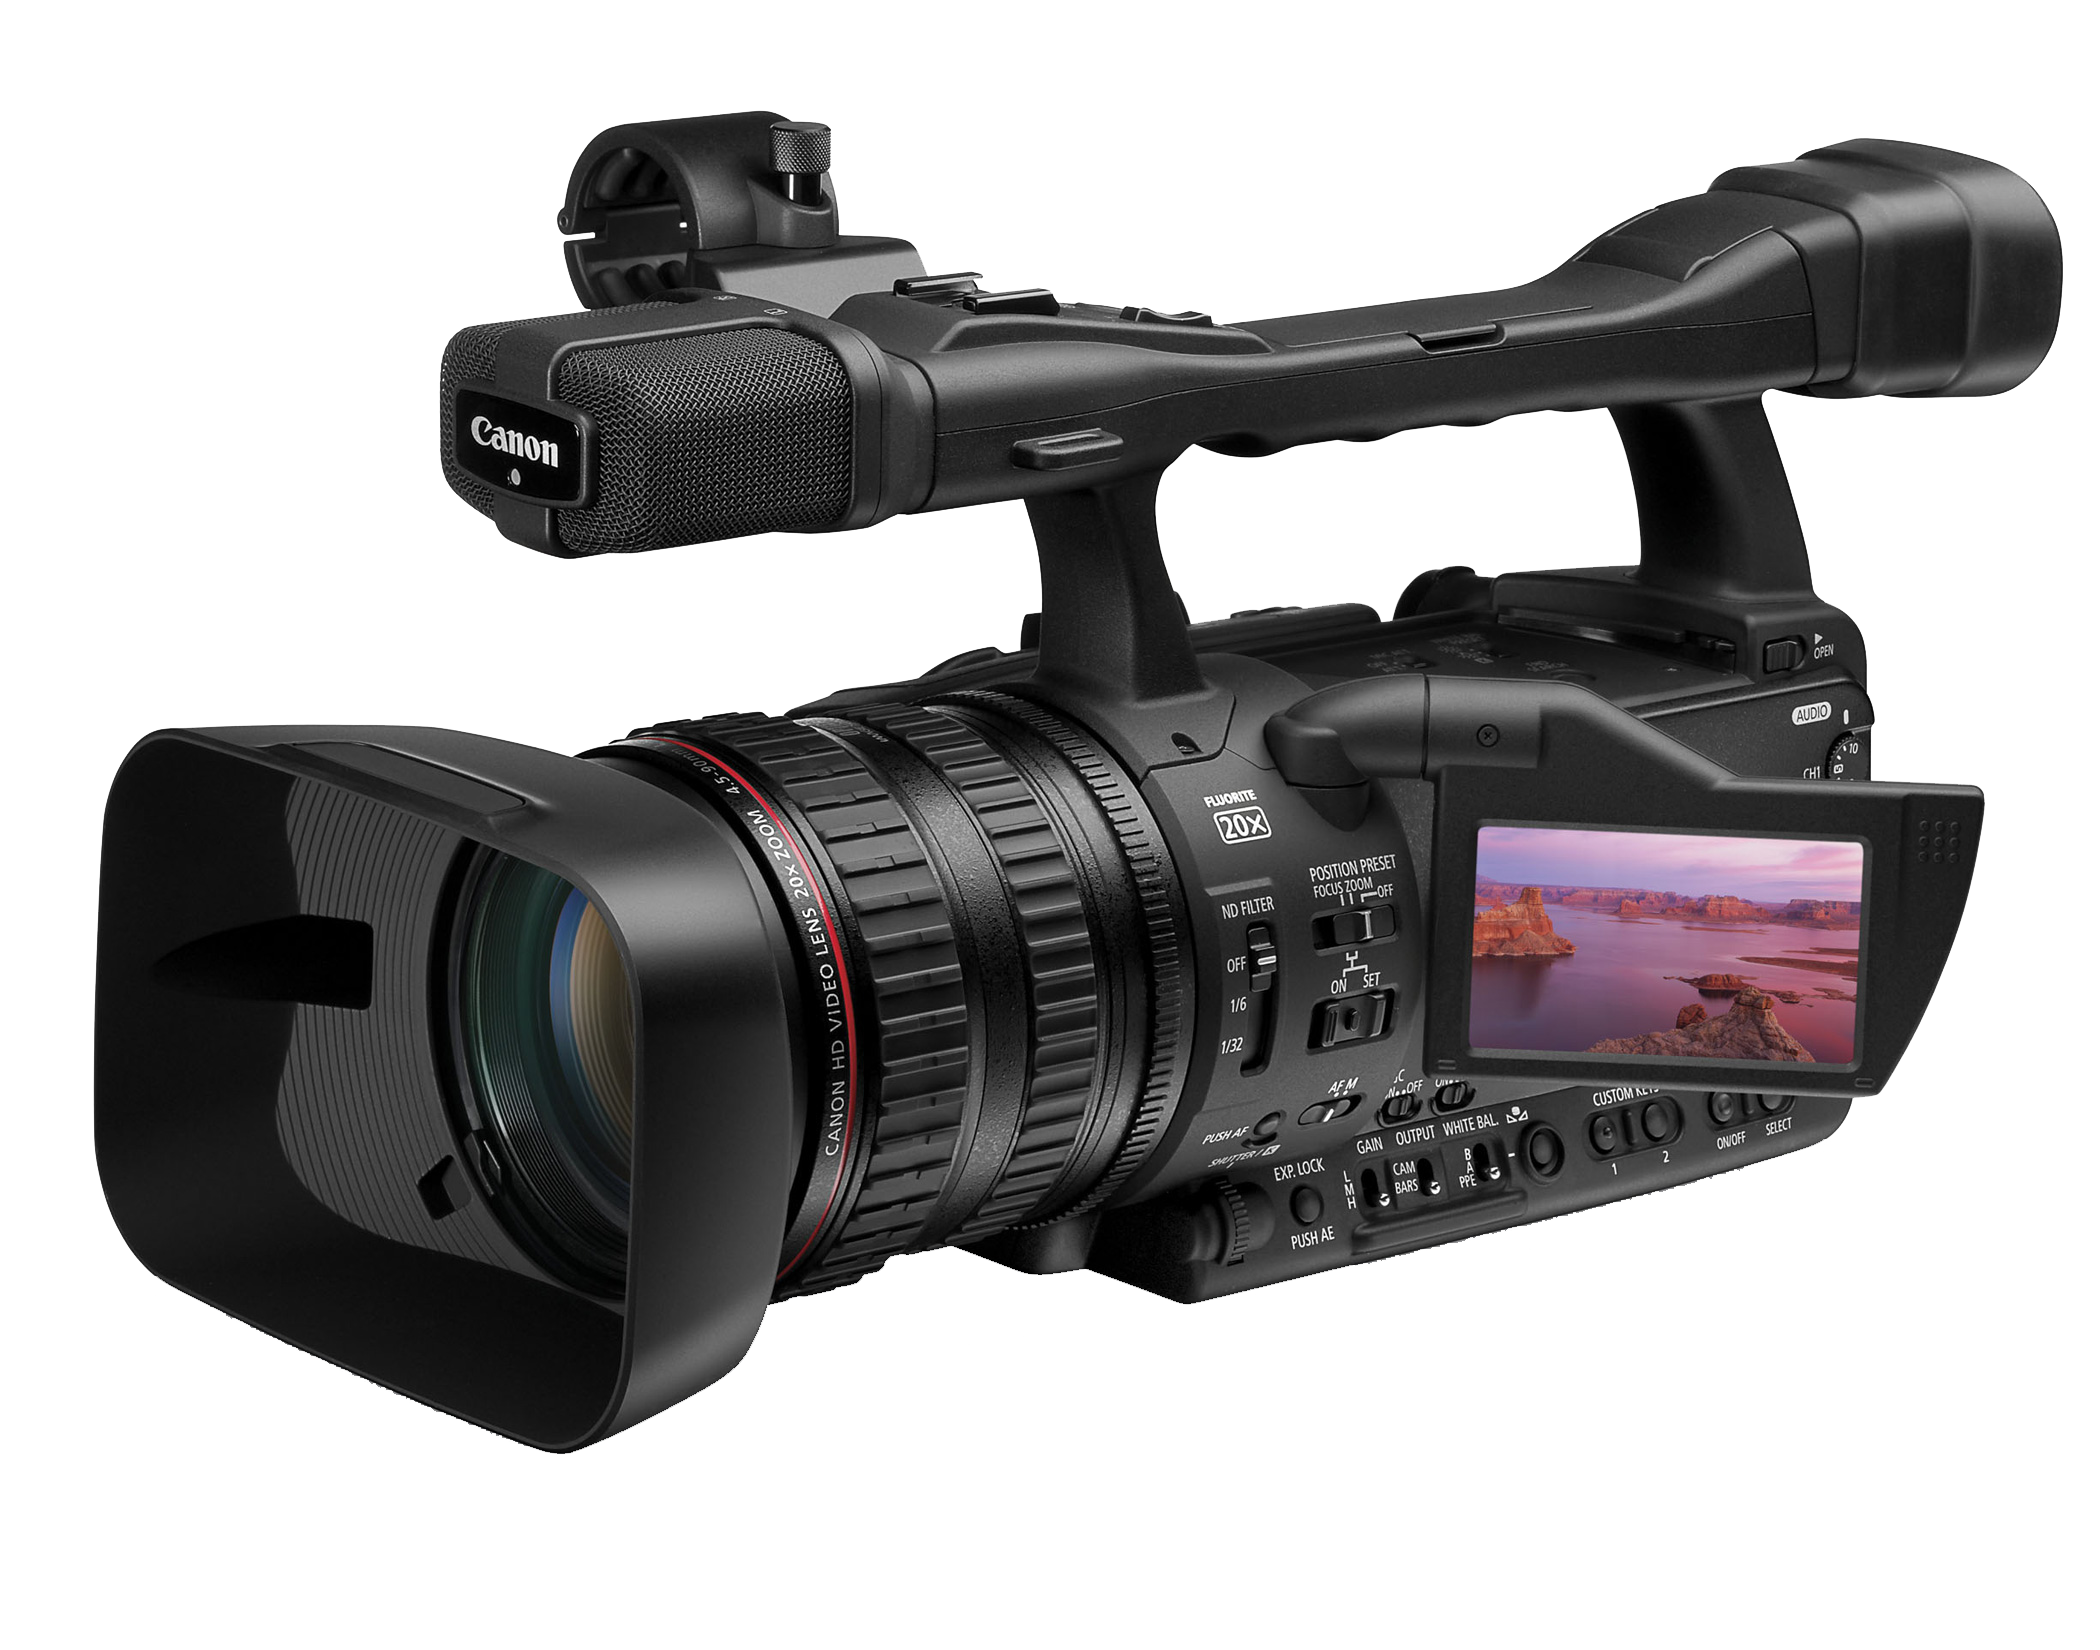 Professional Video Camera Image PNG Image